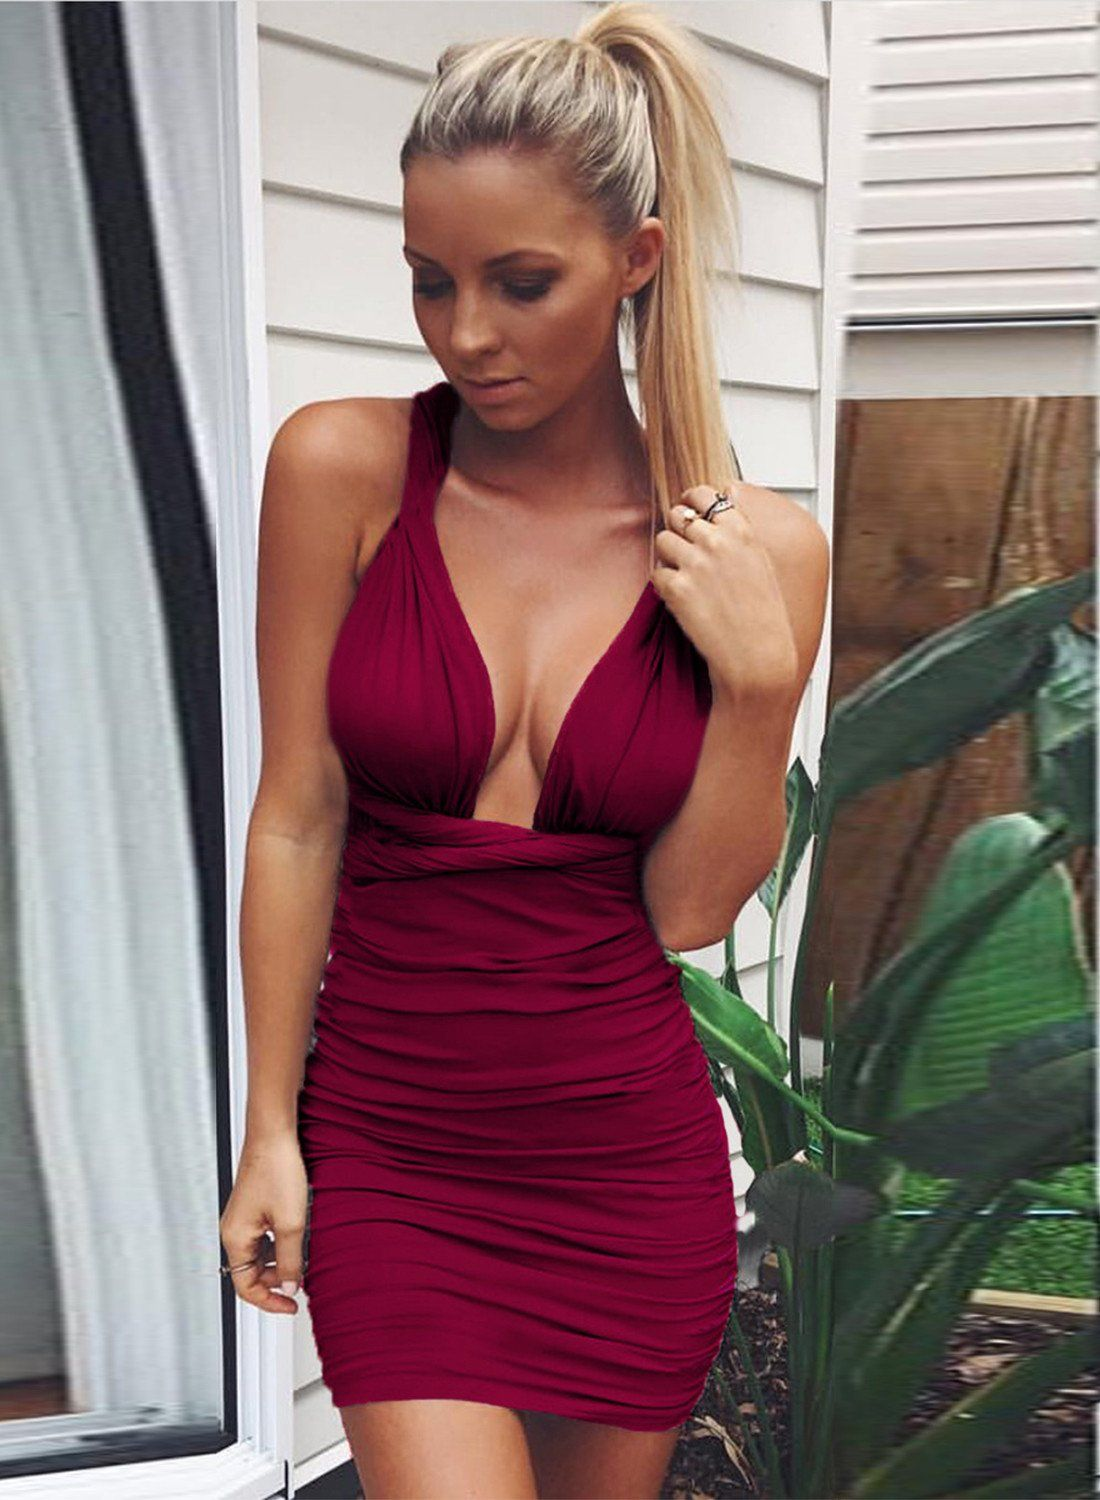 dadb9decc6a Deep V Neck Bandage Ruched Bodycon Club Dress